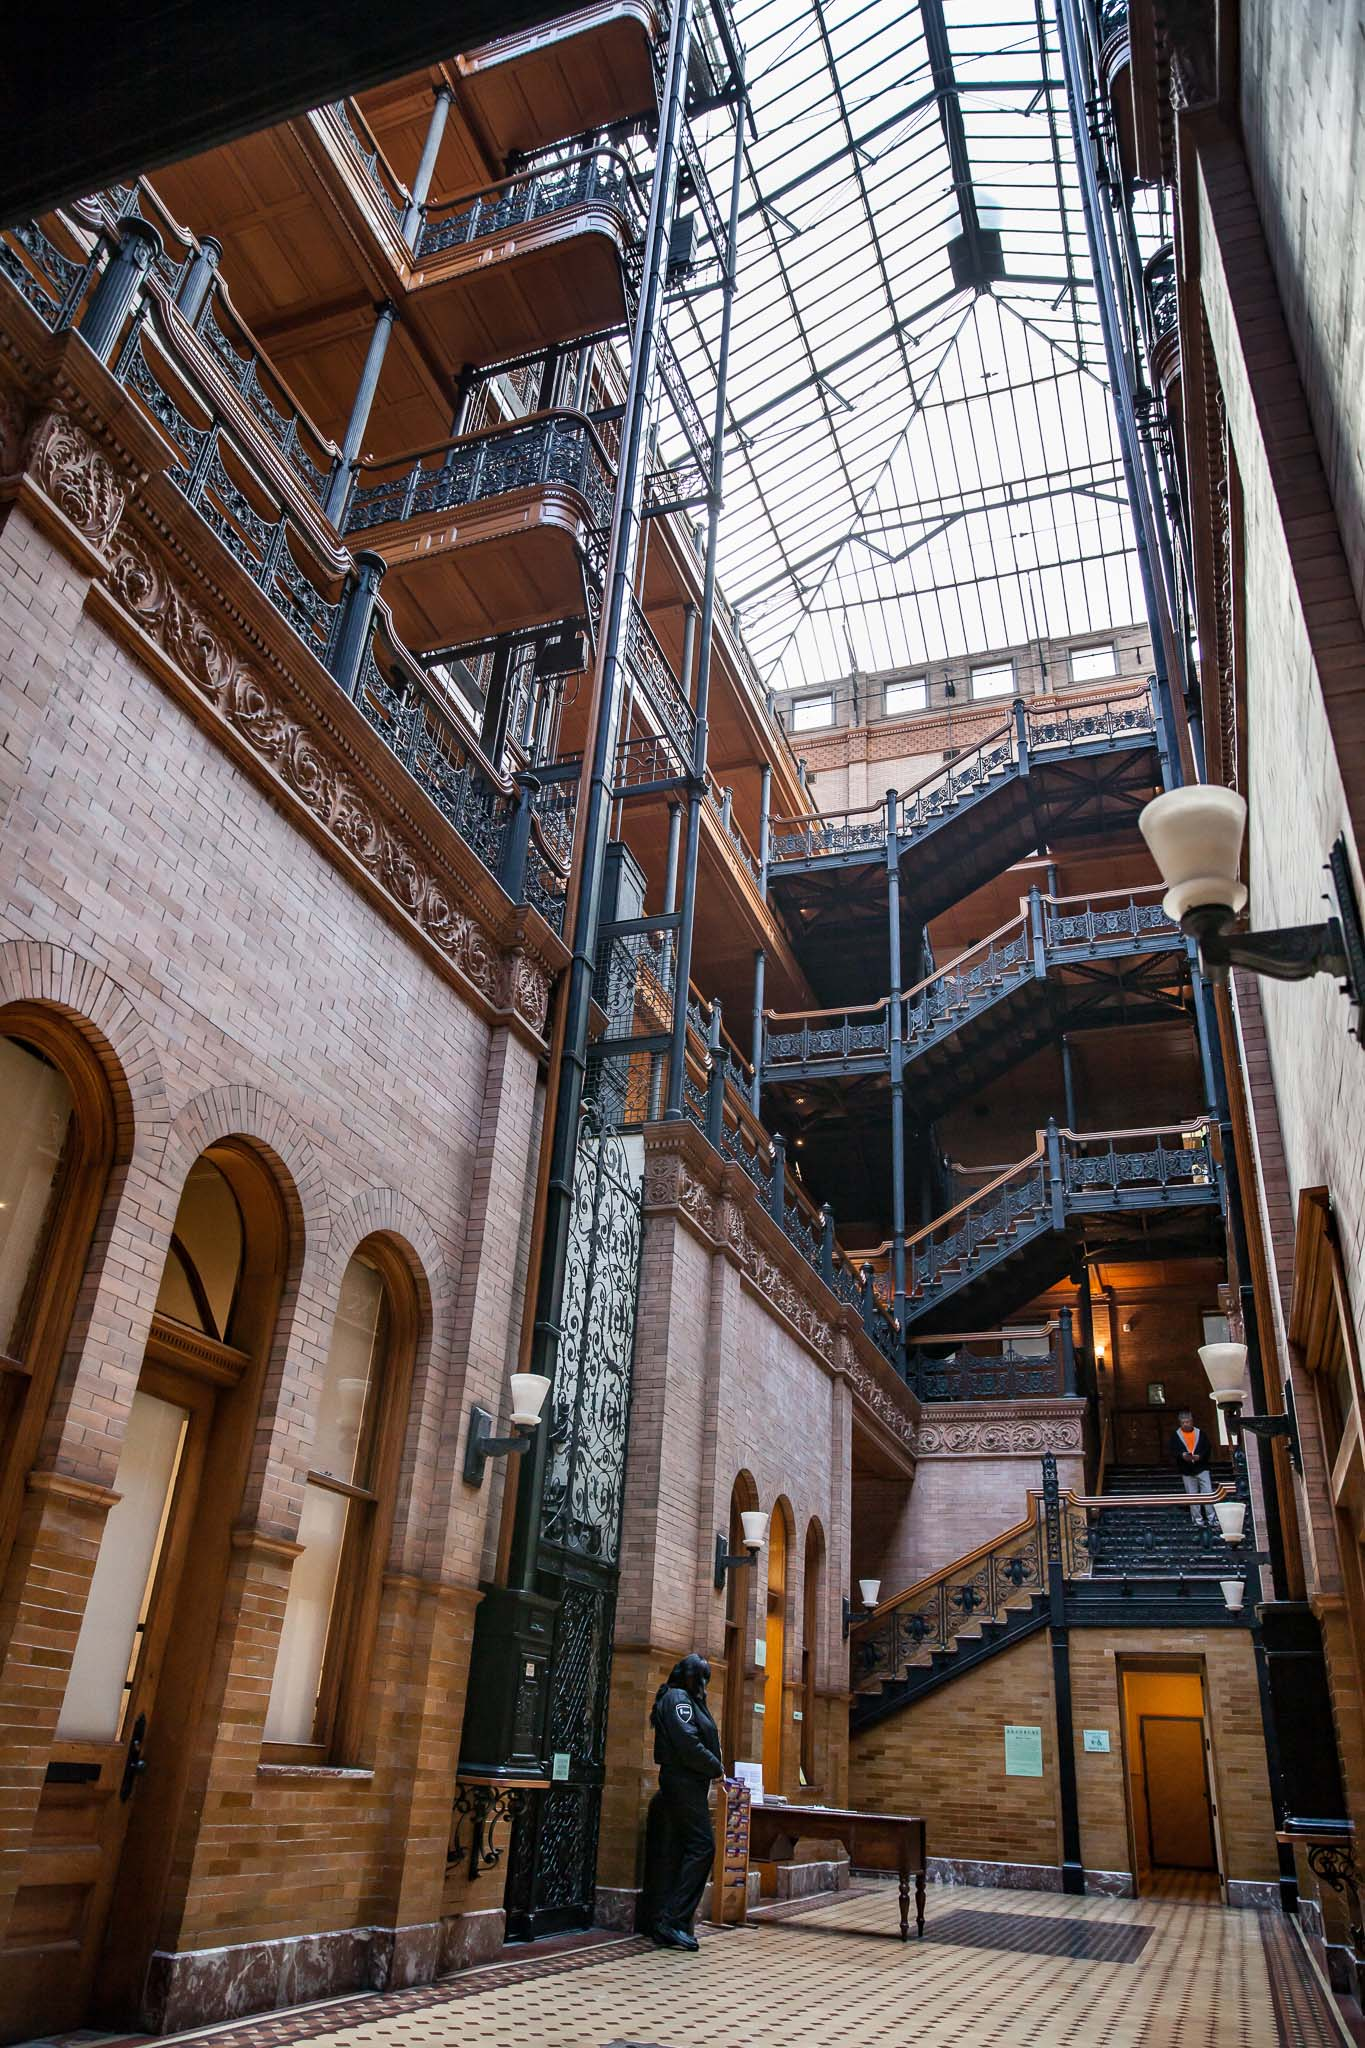 Visiter Los Angeles autrement le Bradbury Building sur Broadway